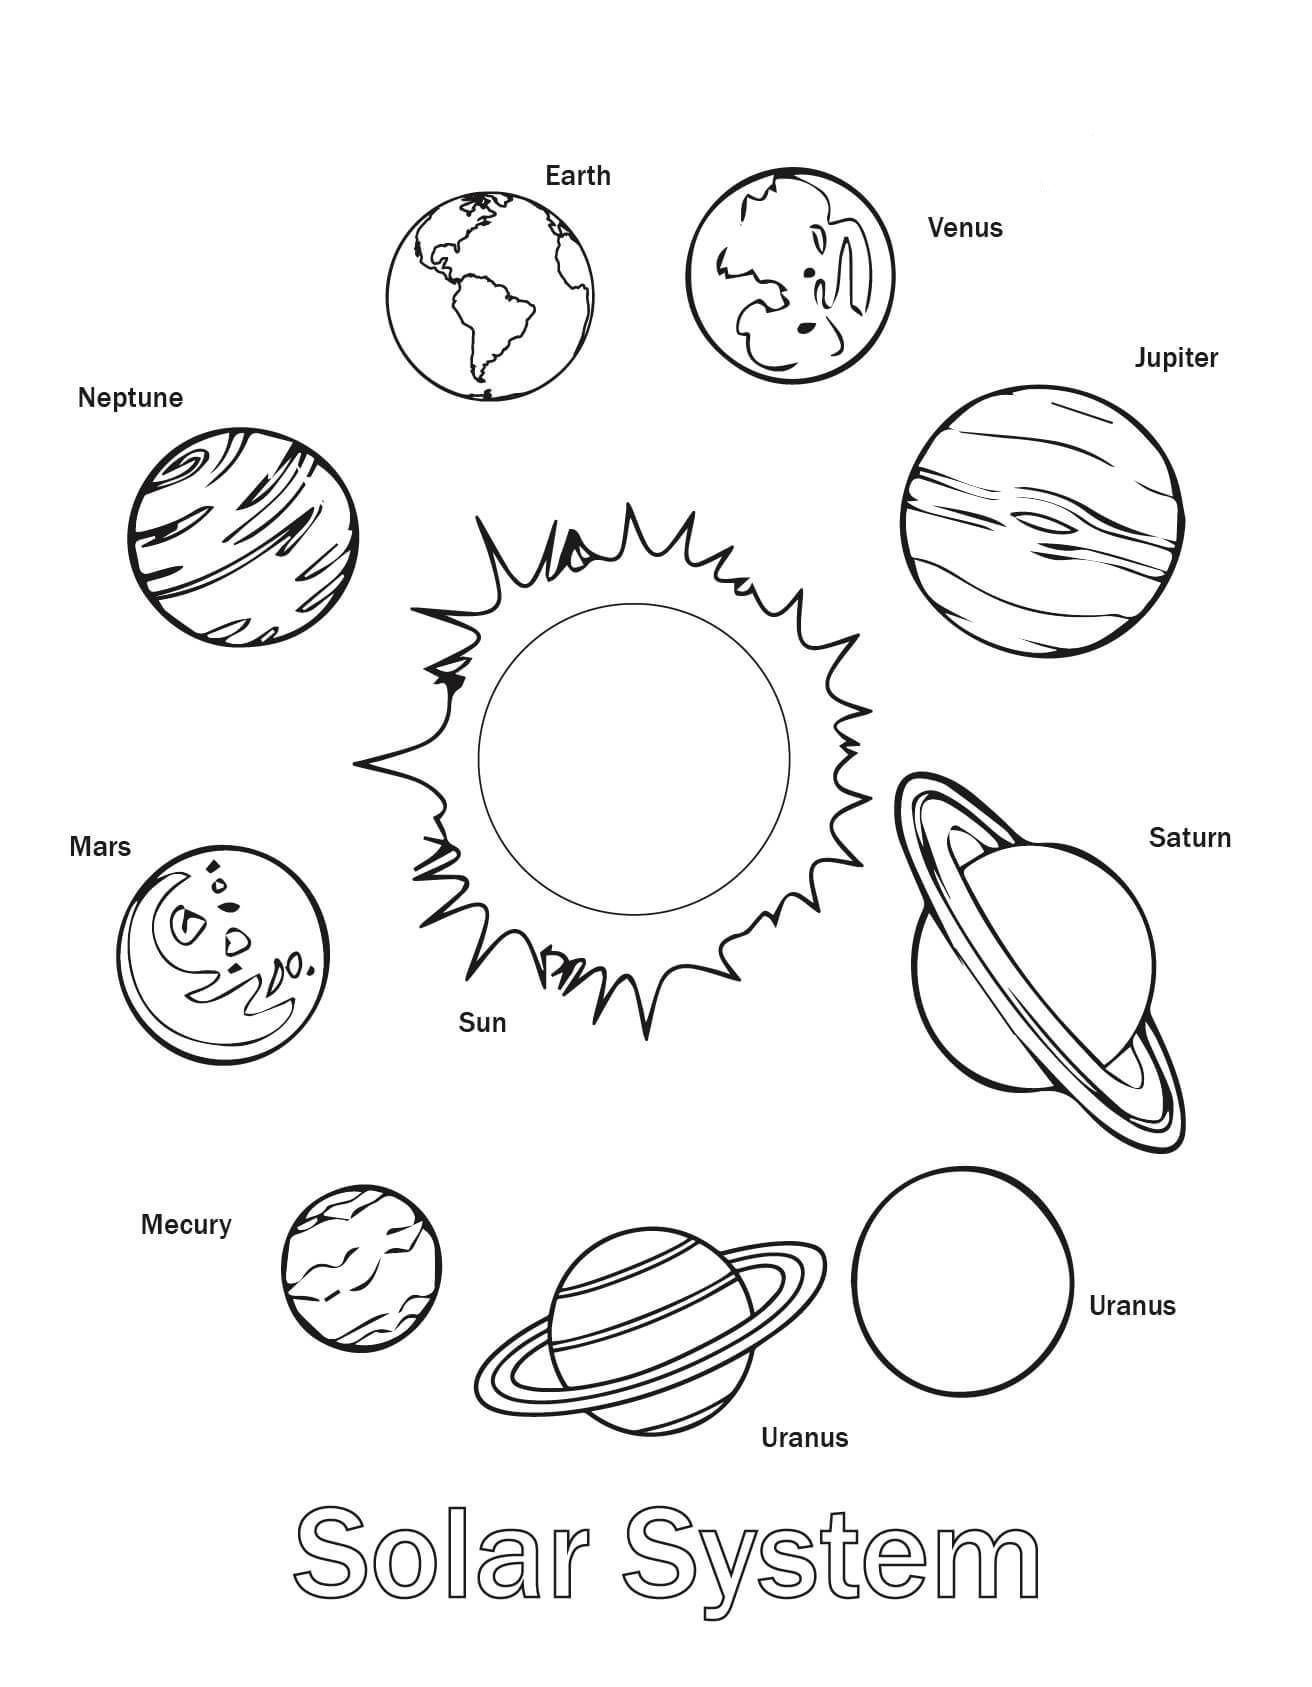 Printable Planet Pictures : printable, planet, pictures, Printable, Solar, System, Coloring, Pages